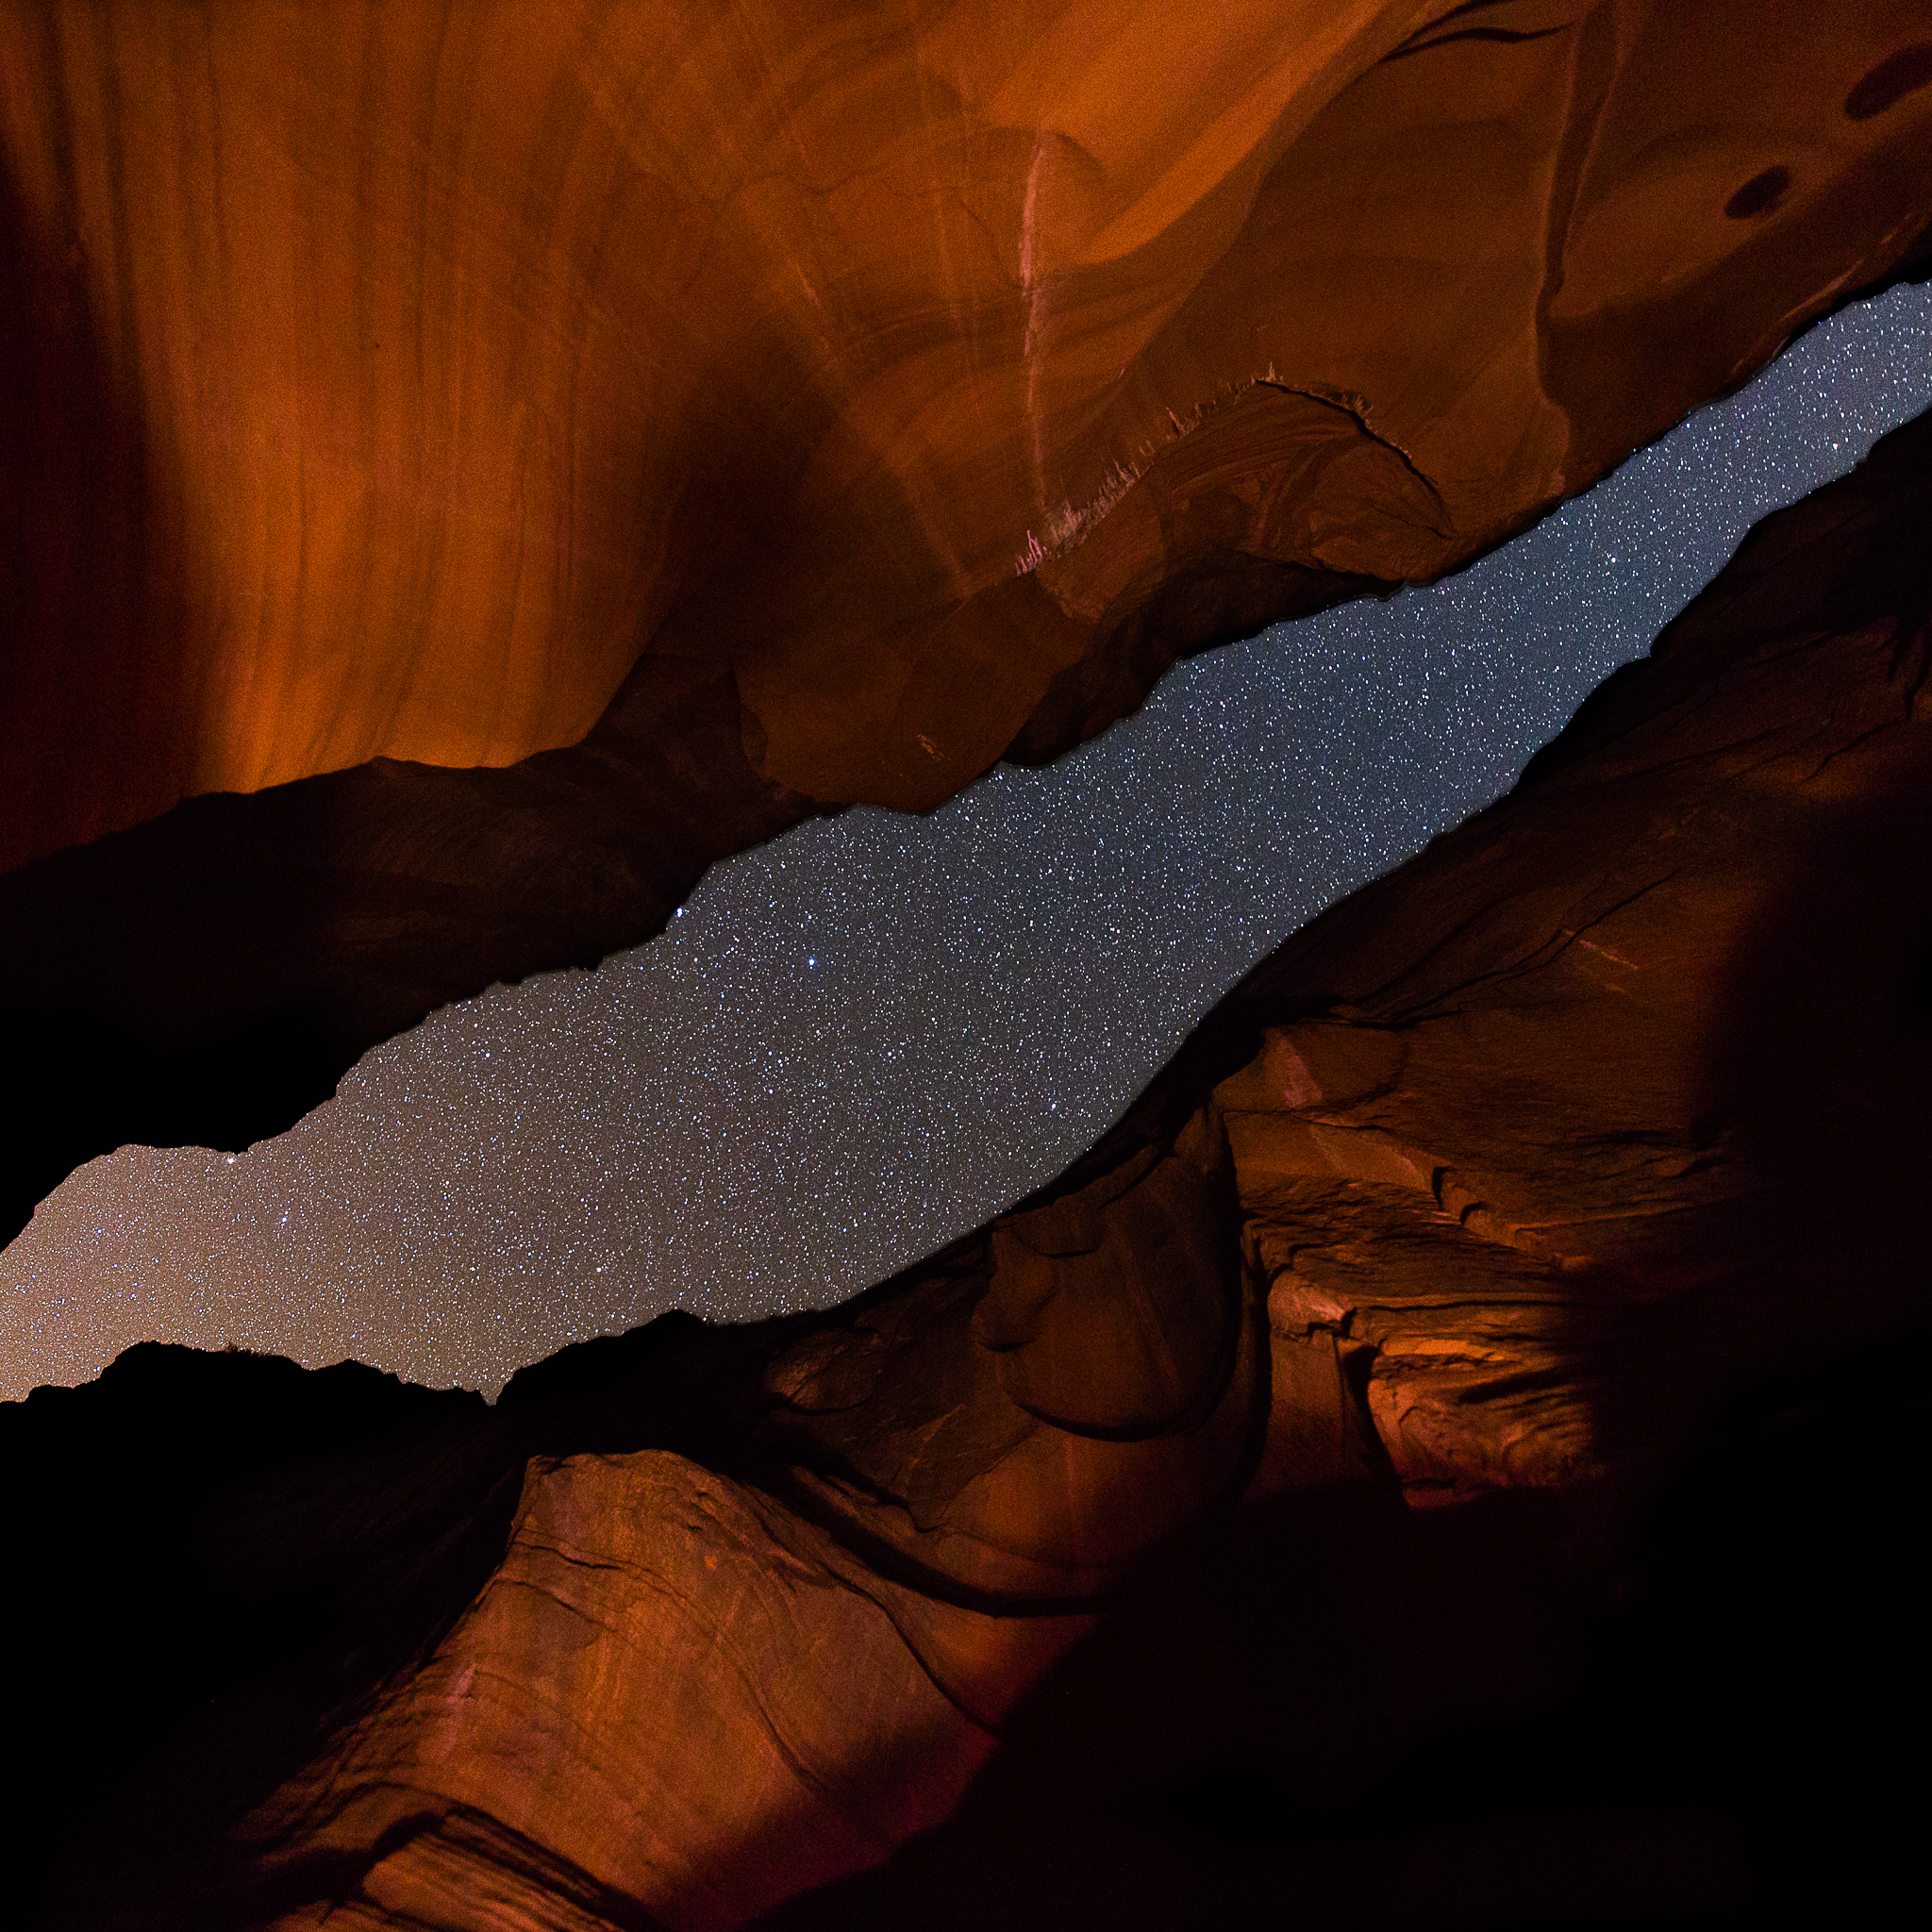 Secret Canyon at night. Canon 5D III with 14mm f/1.8 at f/1.8. 20 second exposure at ISO 4000.